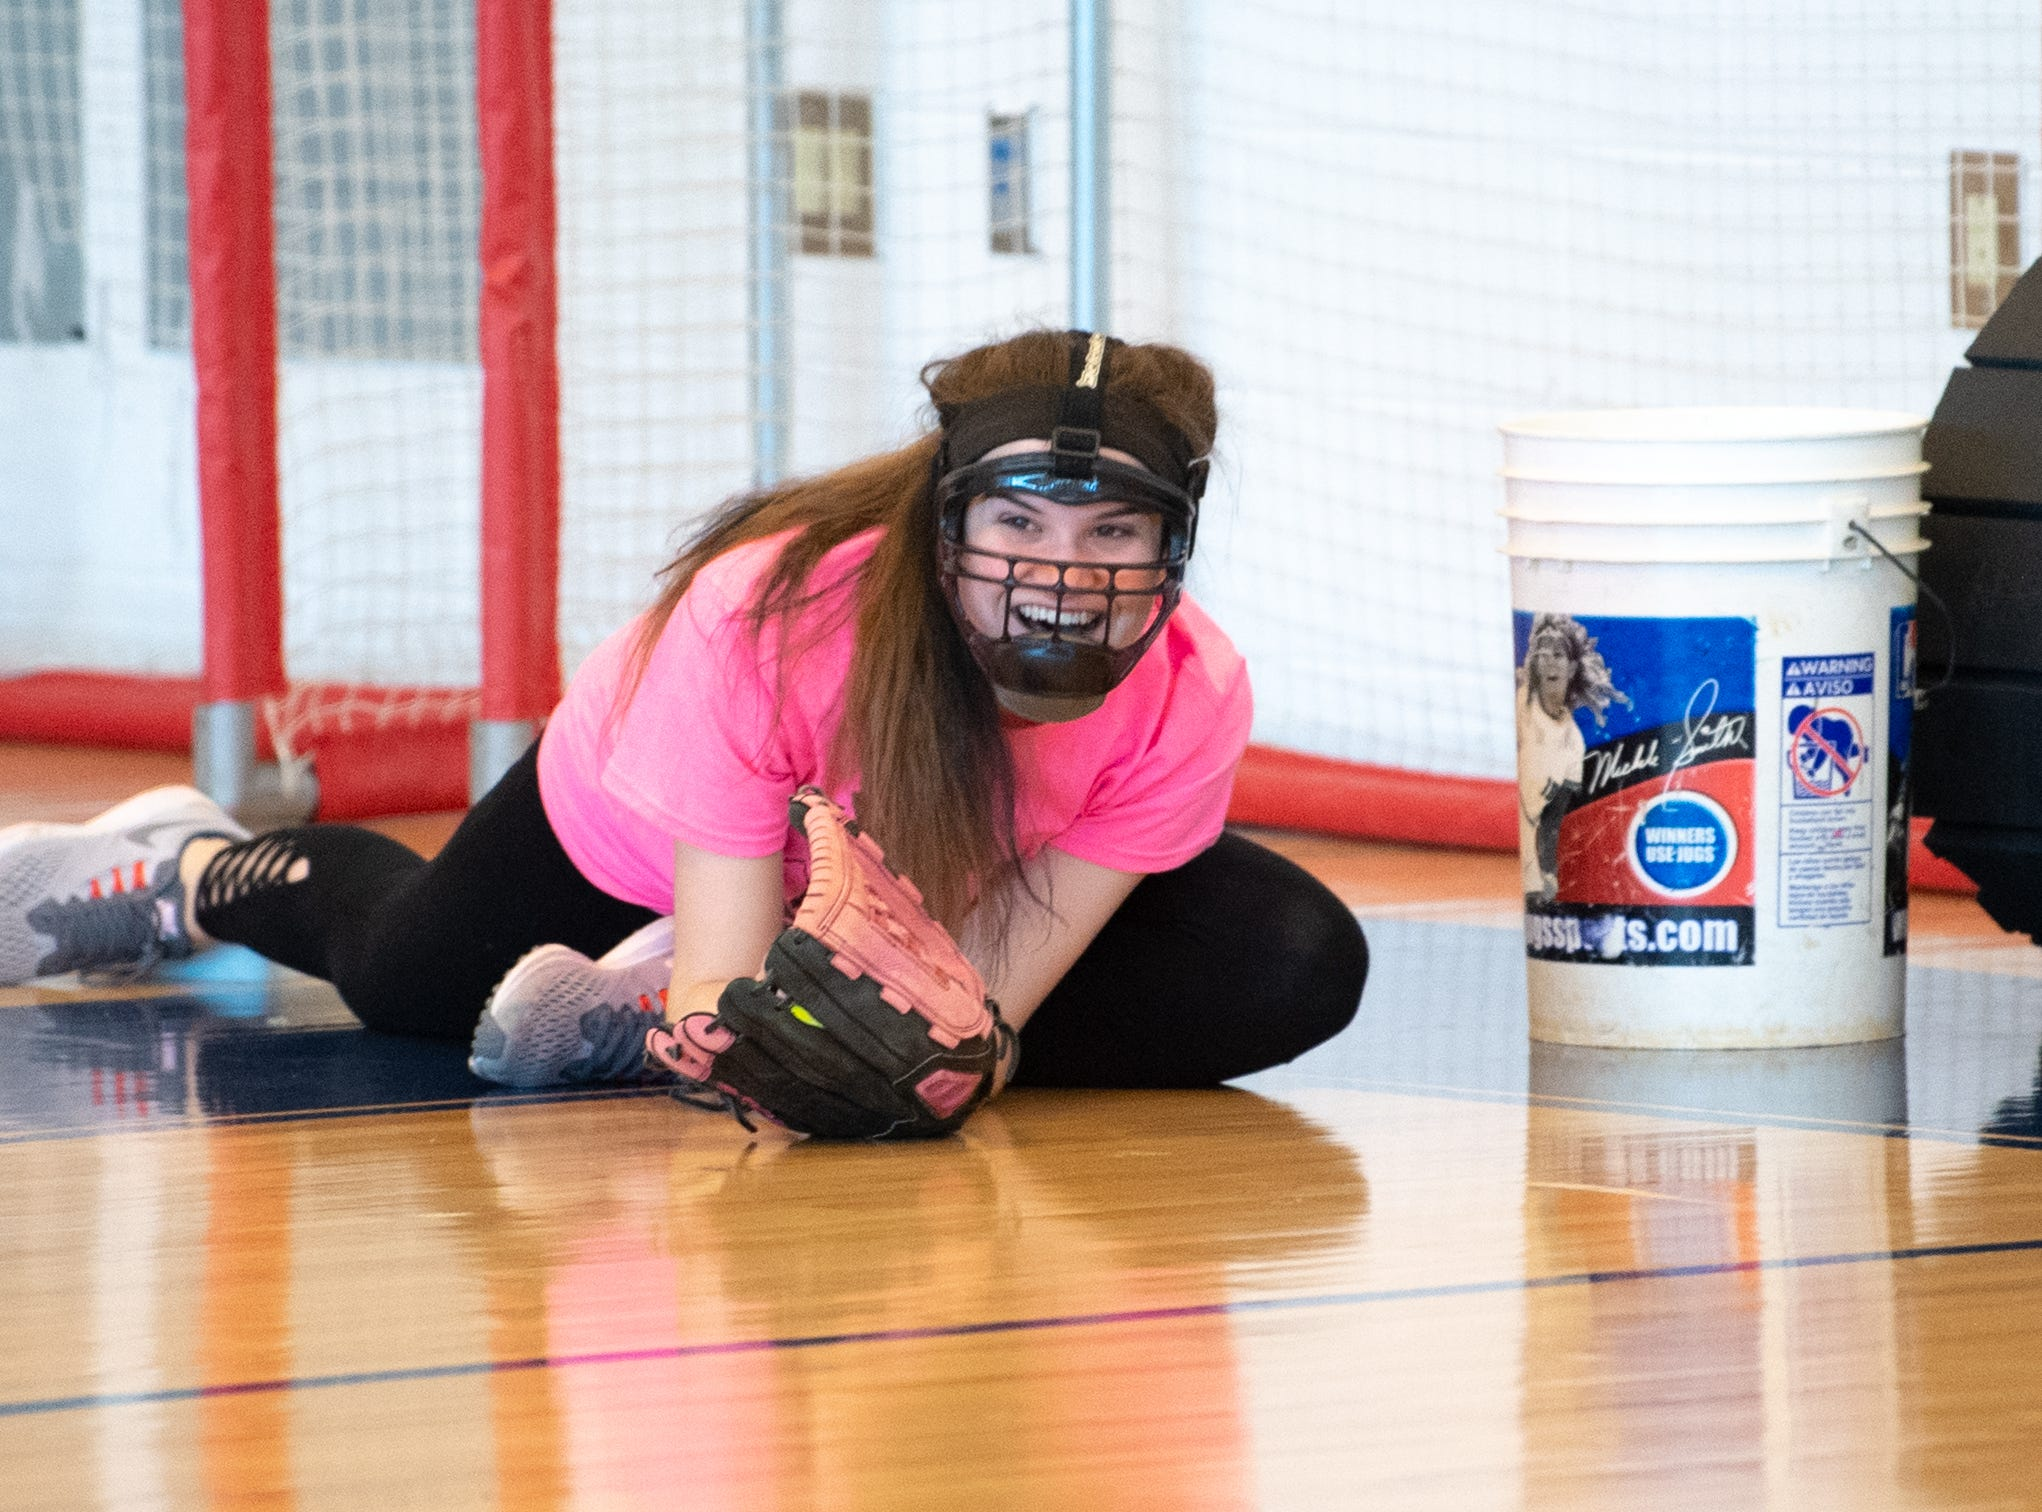 West York's softball players secure the ball by any means necessary during practice, March 5, 2019.